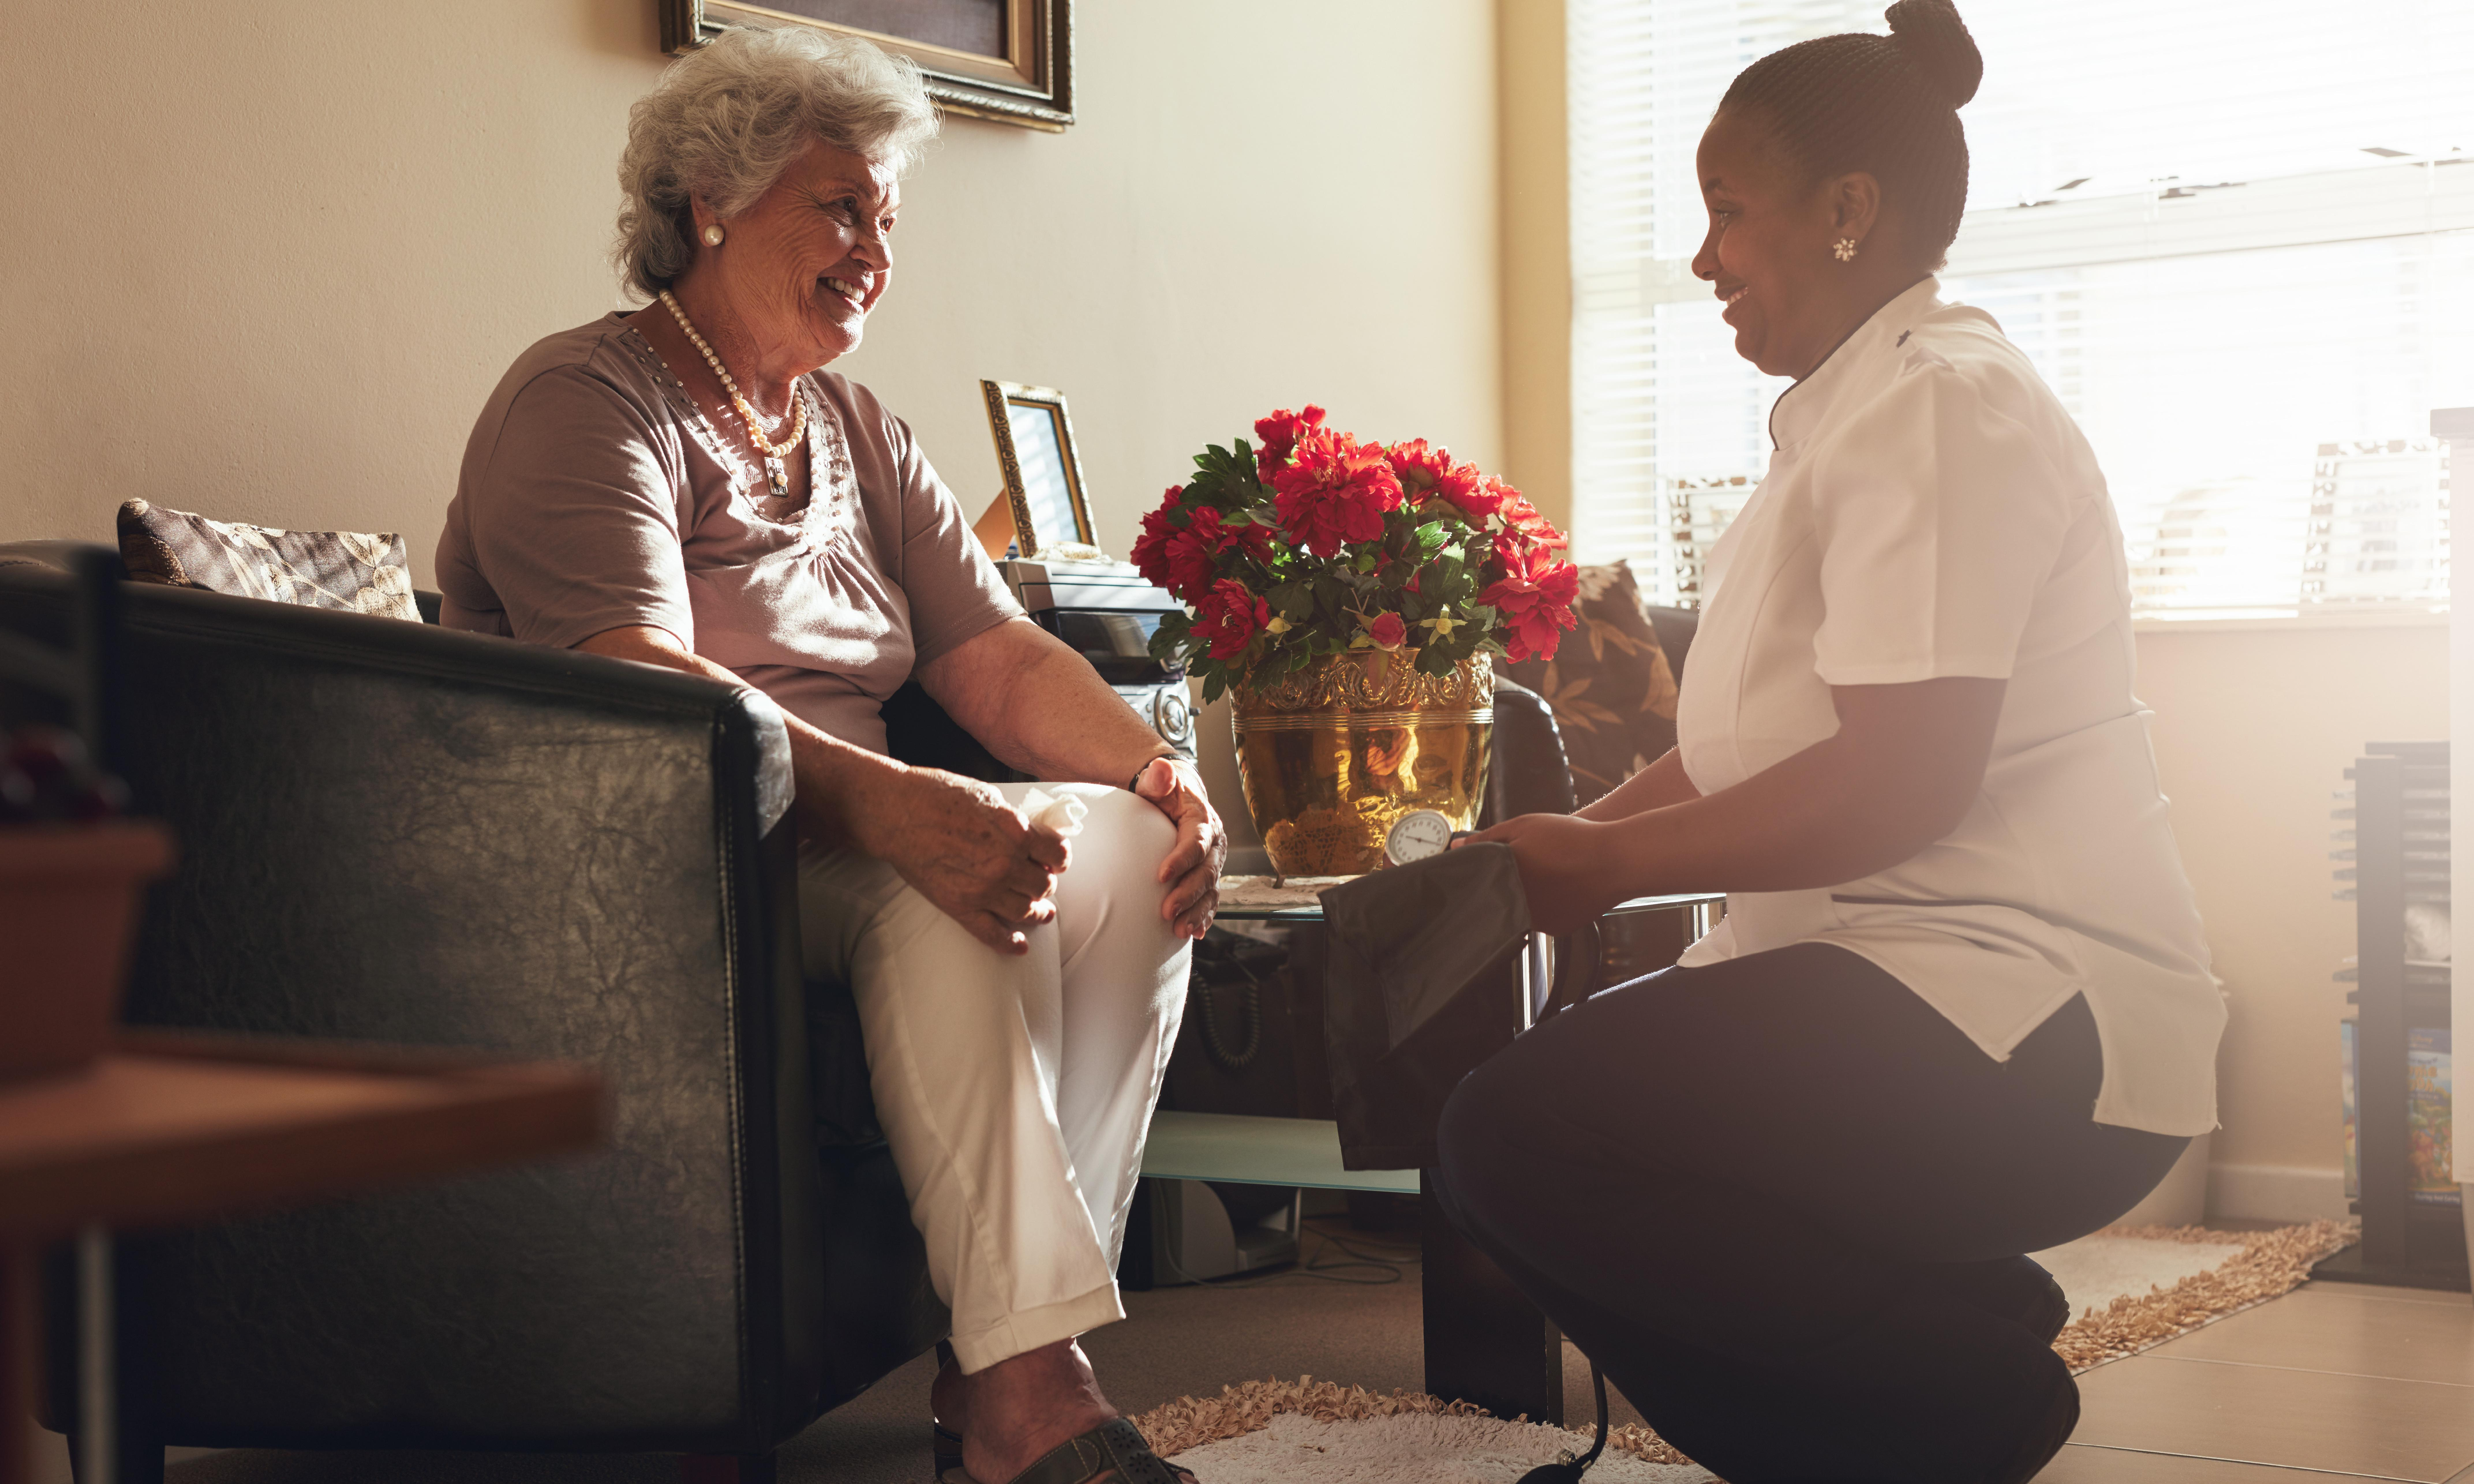 'I deserve the cost of living': US home care workers push to improve pay